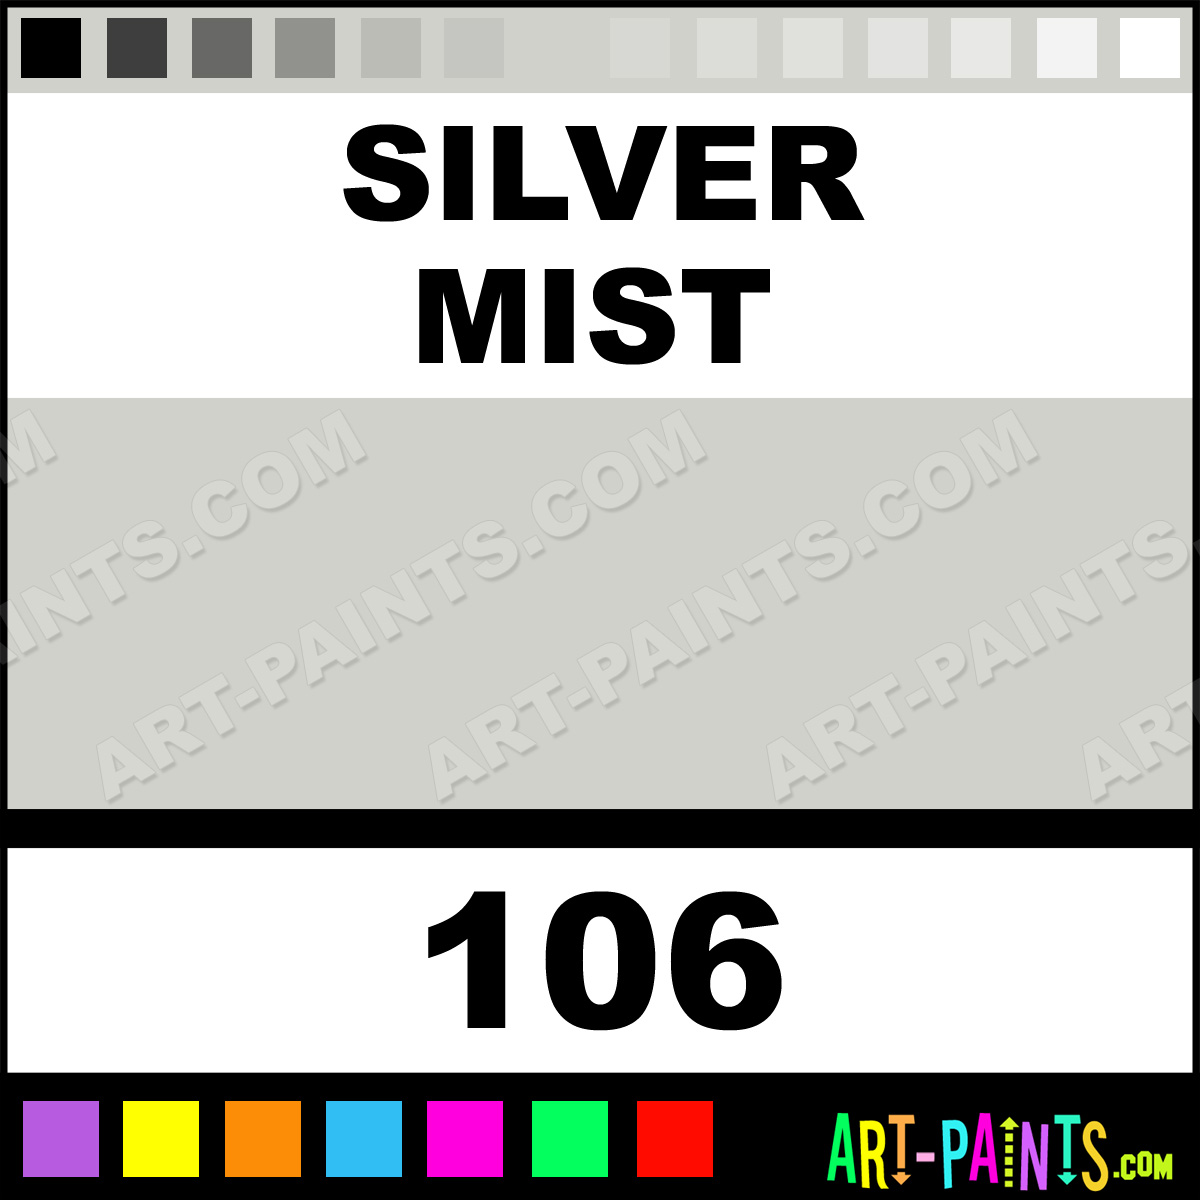 Silver mist flatwall enamel paints 106 silver mist for Silver mist paint color